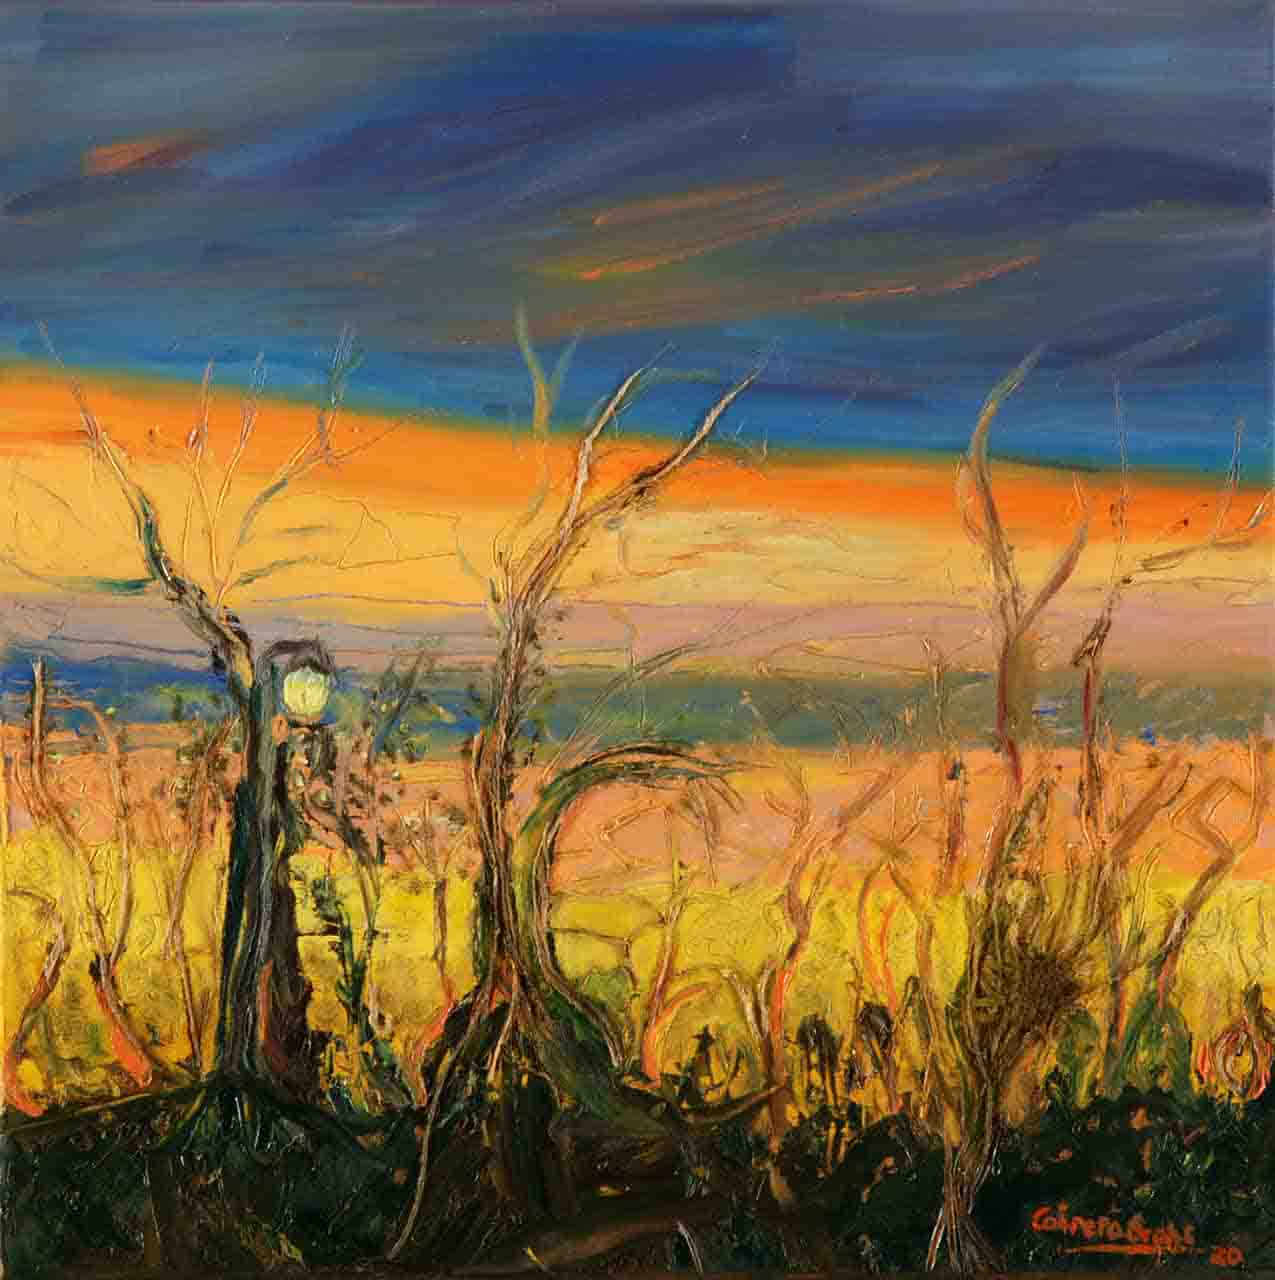 Small size painting that shows a splendid sunset in the Delta, where the sunlight, which is not seen, reflects golden and blue tones in the sky. The painting was done in oil on canvas using mixed media and a palette knife.